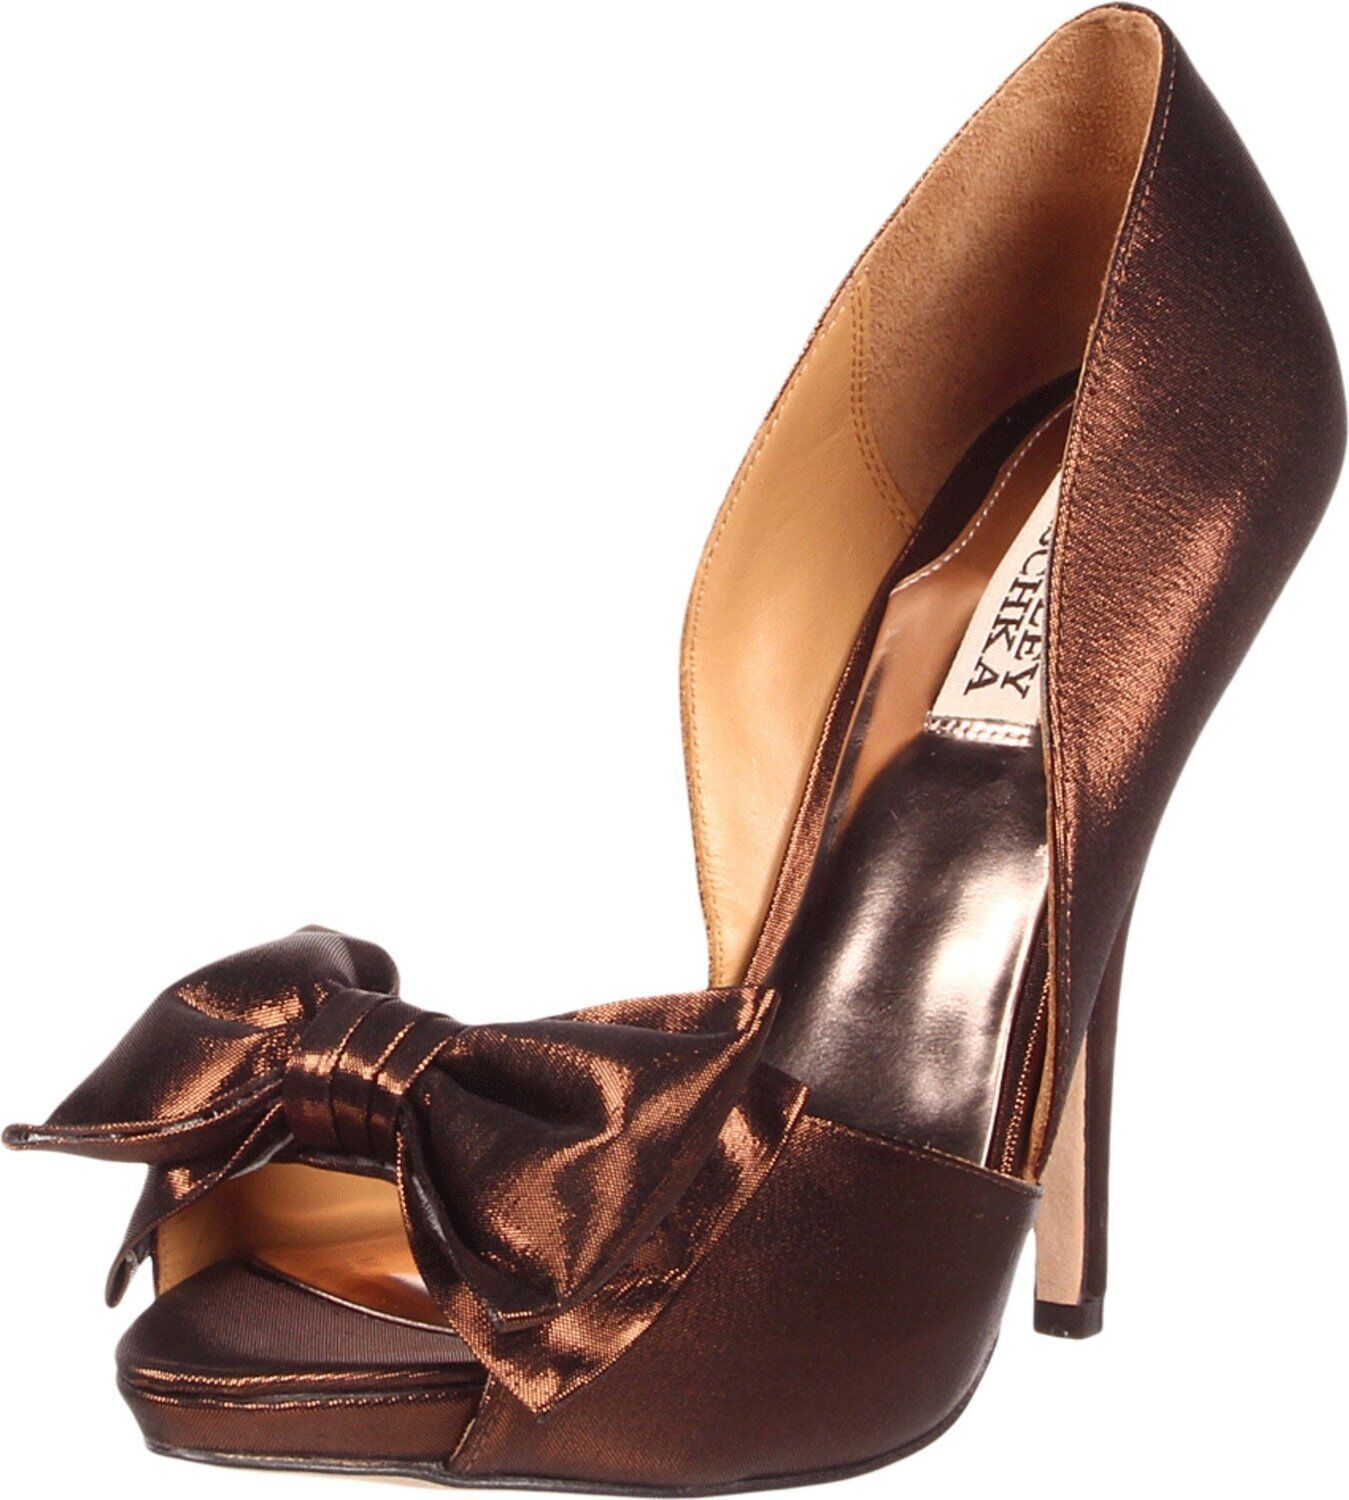 NIB Badgley Mischka Mable heels pump evening bridal BOW Scarpe bronze 8,5